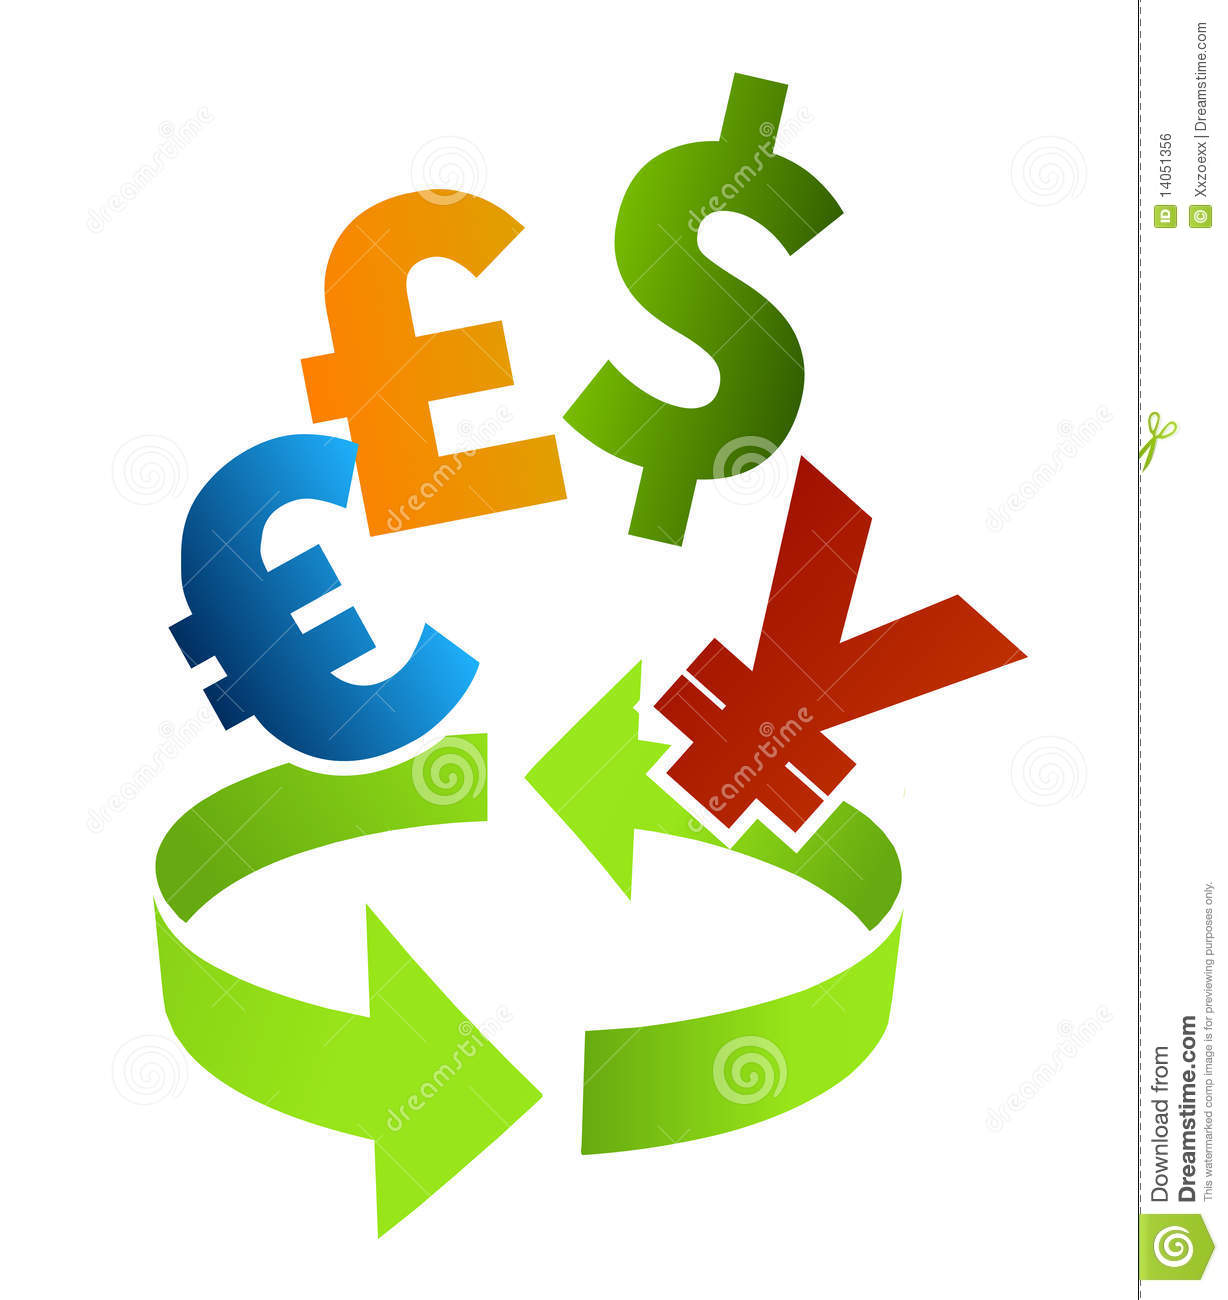 Currency Converter Clip Art Royalty Free Stock Image.